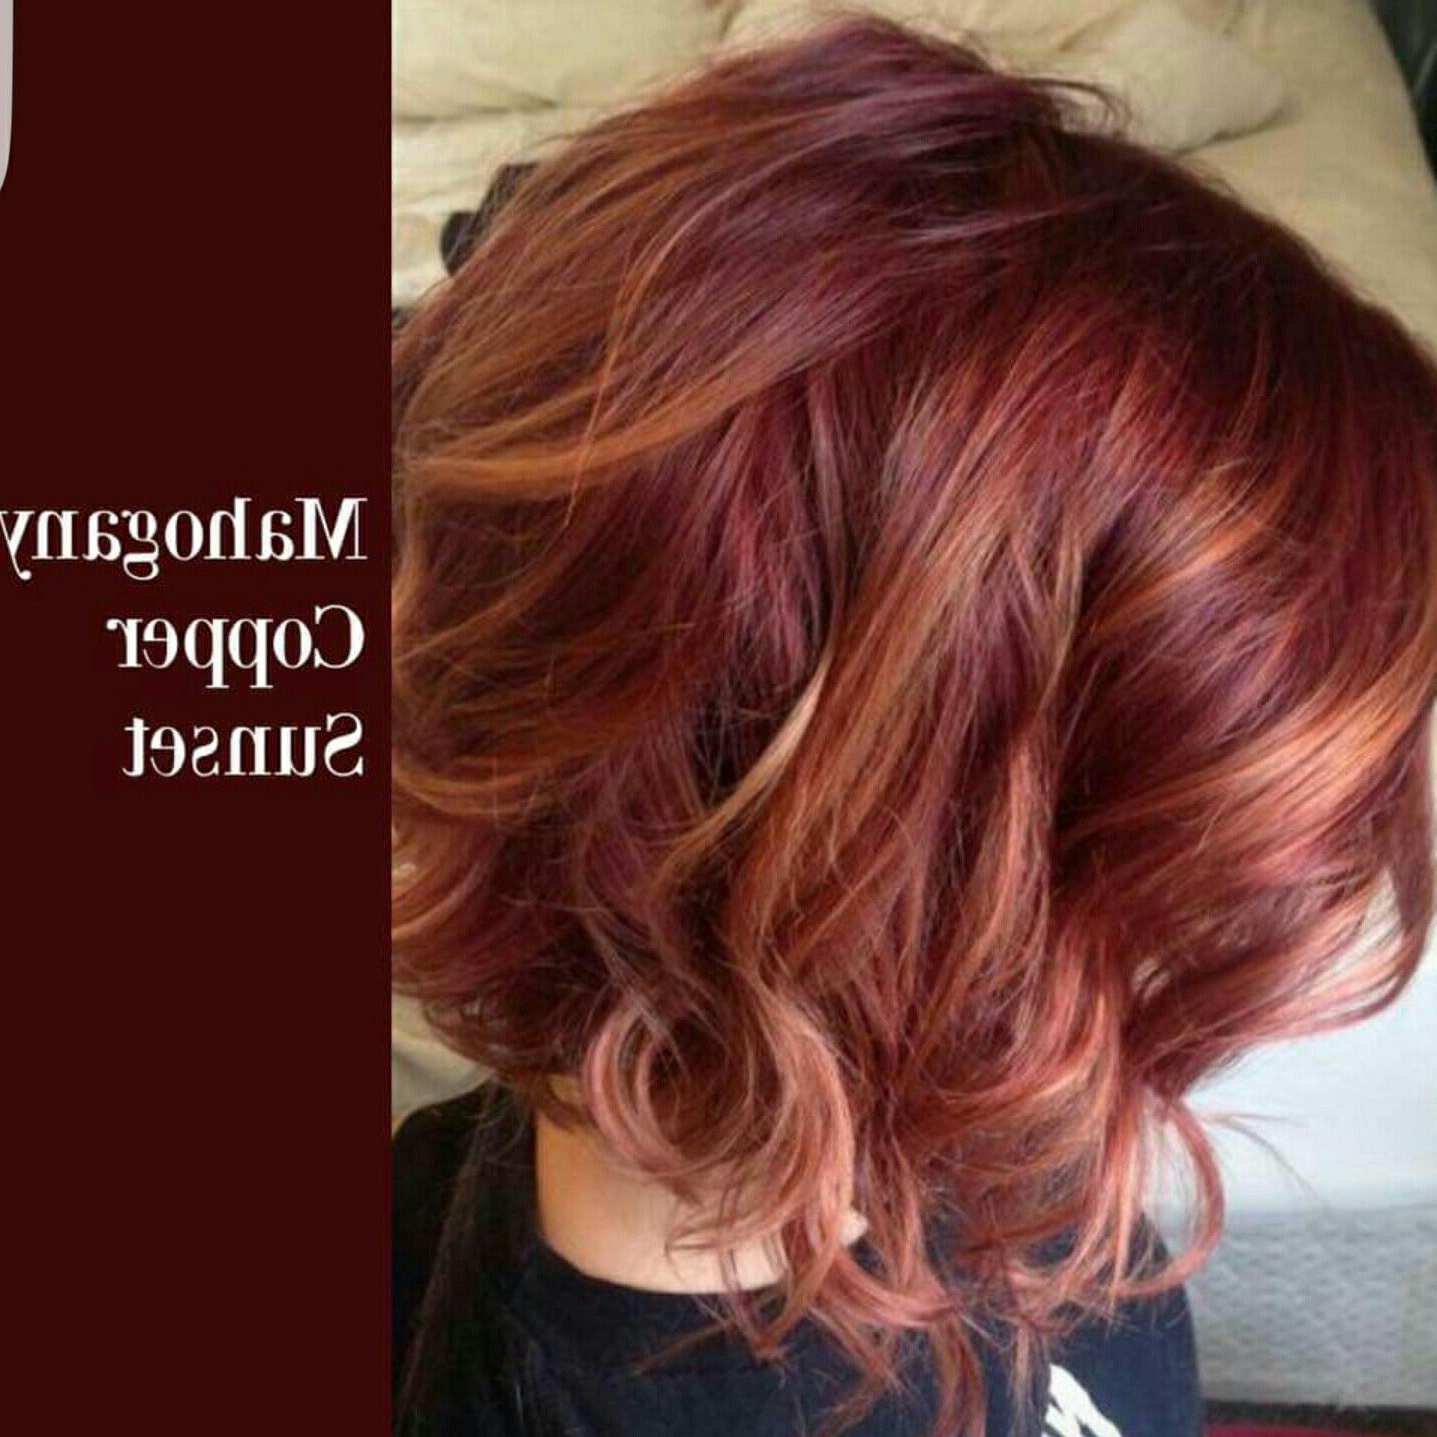 Mahogany Copper Sunset | Hair Ideas In 2018 | Pinterest | Hair, Hair With Burgundy And Tangerine Piecey Bob Hairstyles (View 4 of 20)